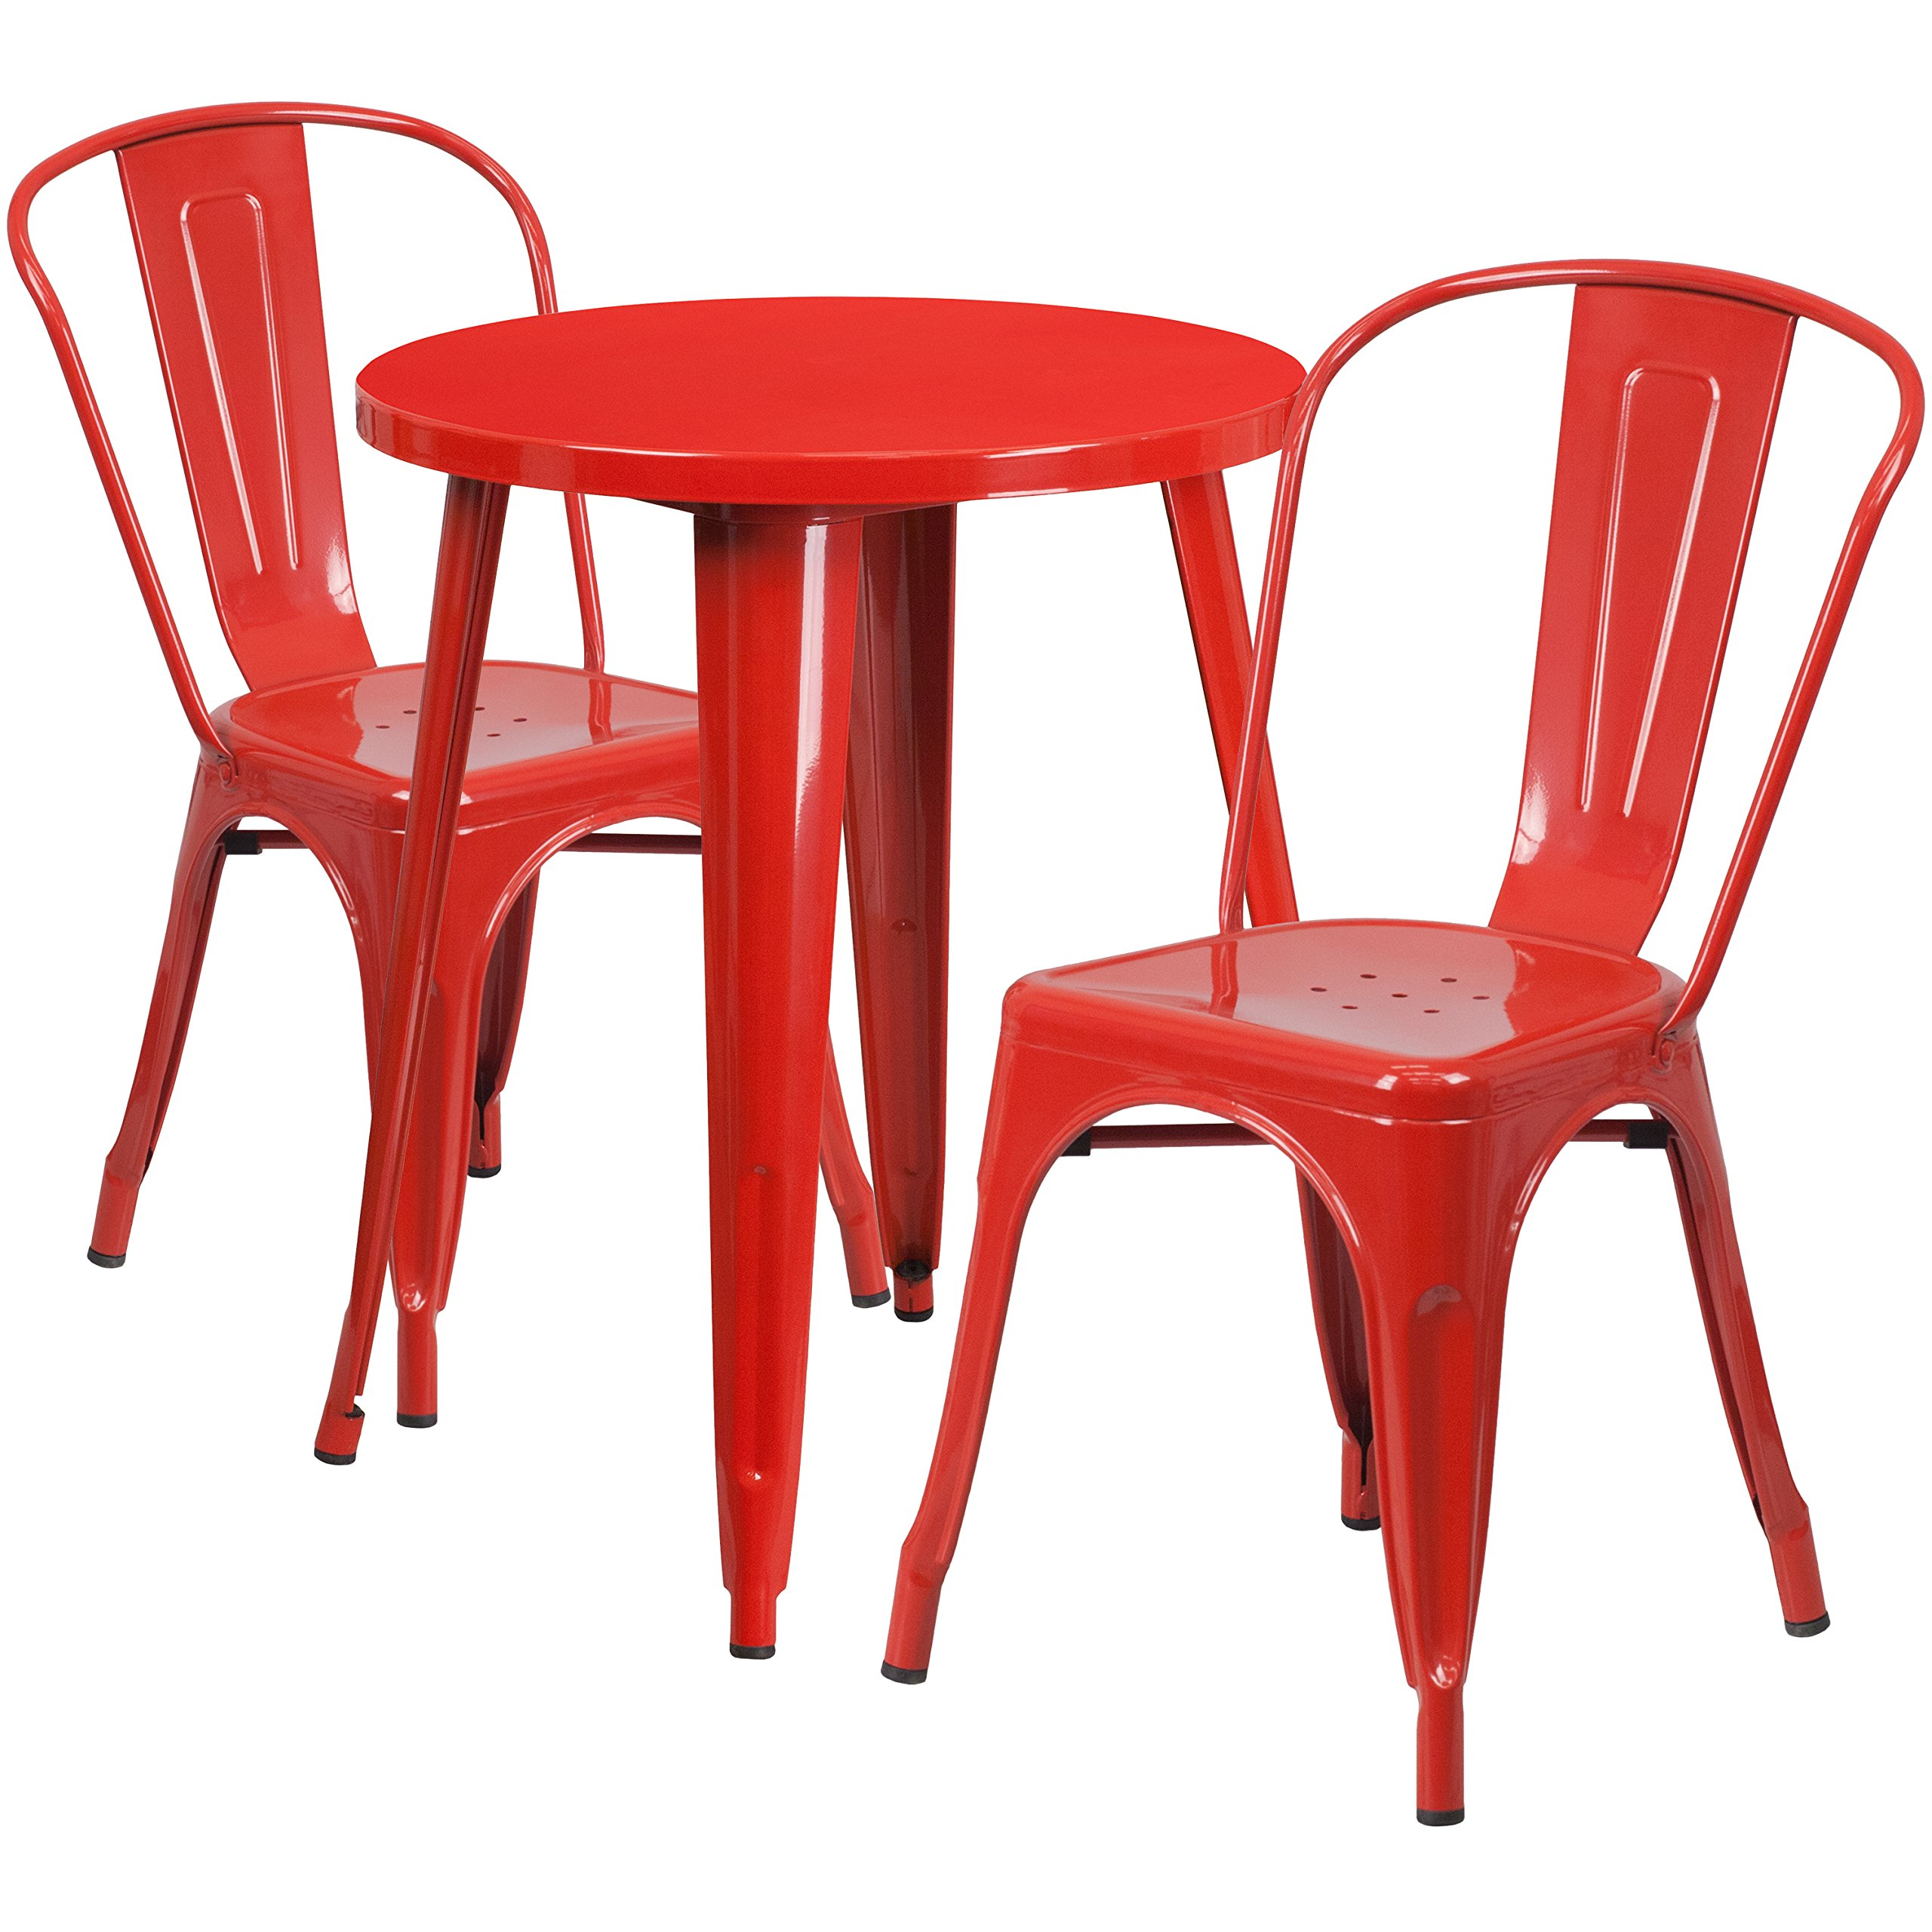 Flash Furniture 24'' Round Red Metal Indoor-Outdoor Table Set with 2 Cafe Chairs